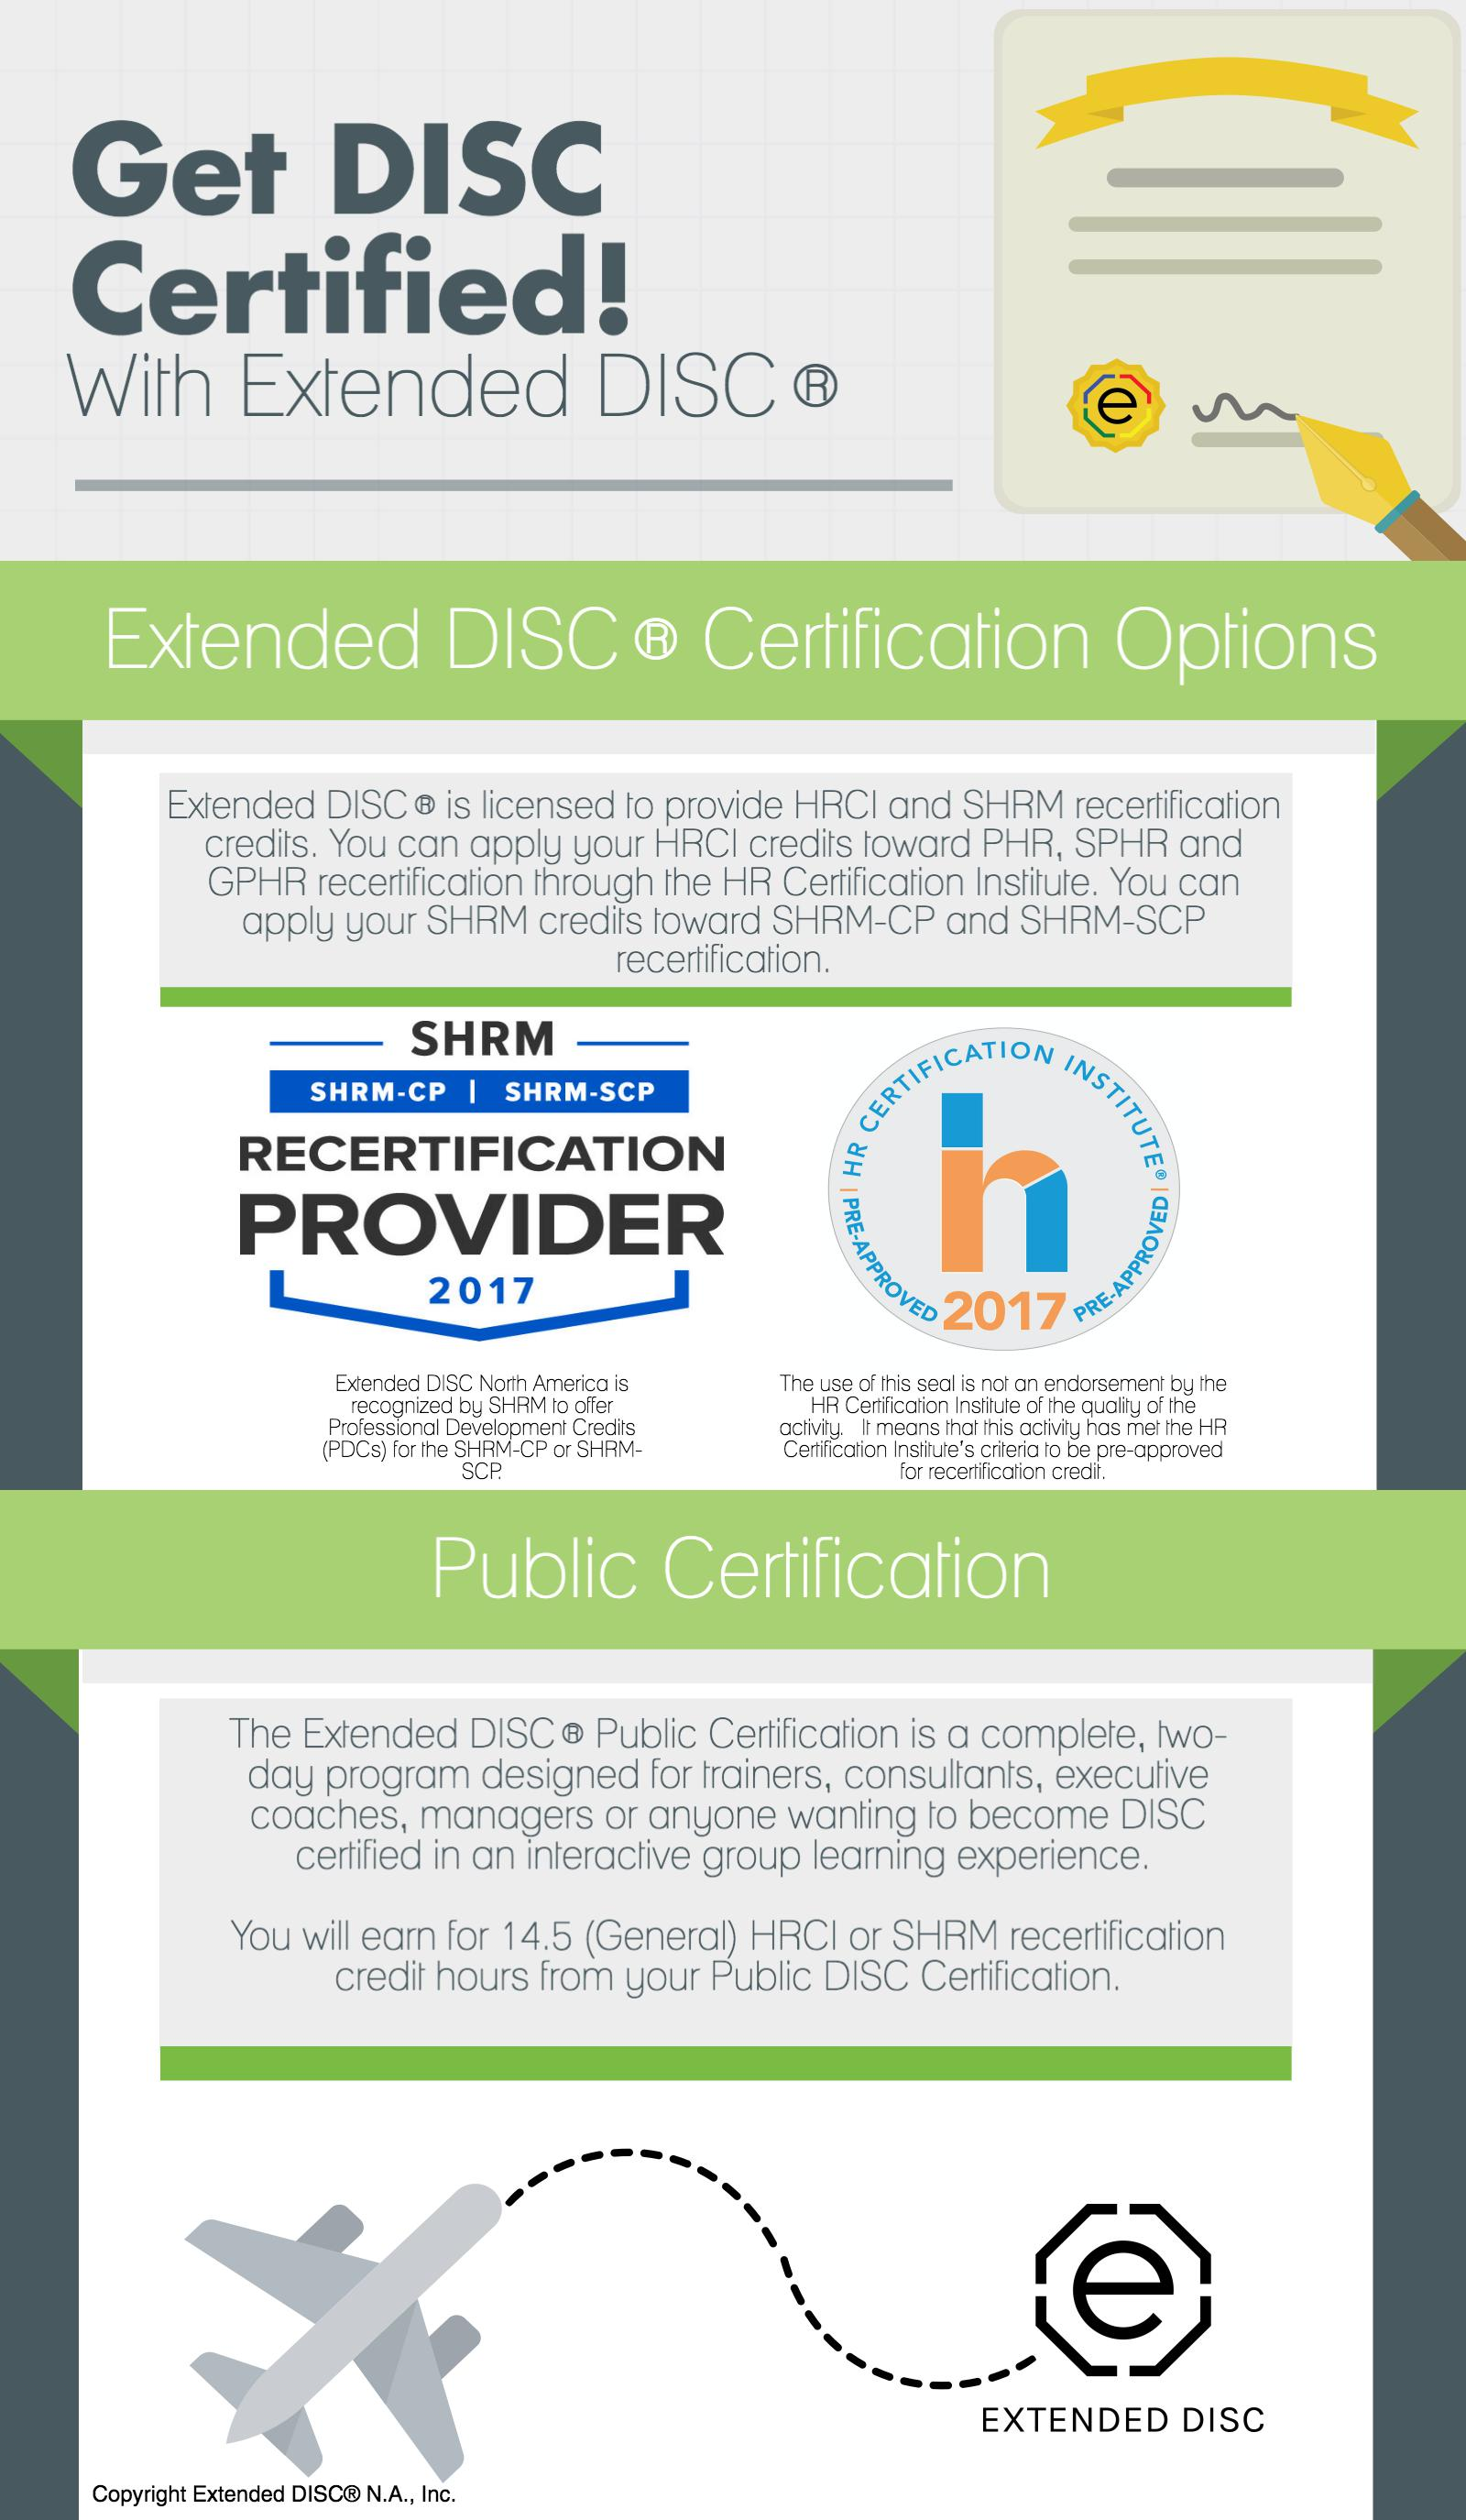 Extended DISC Certification: Public